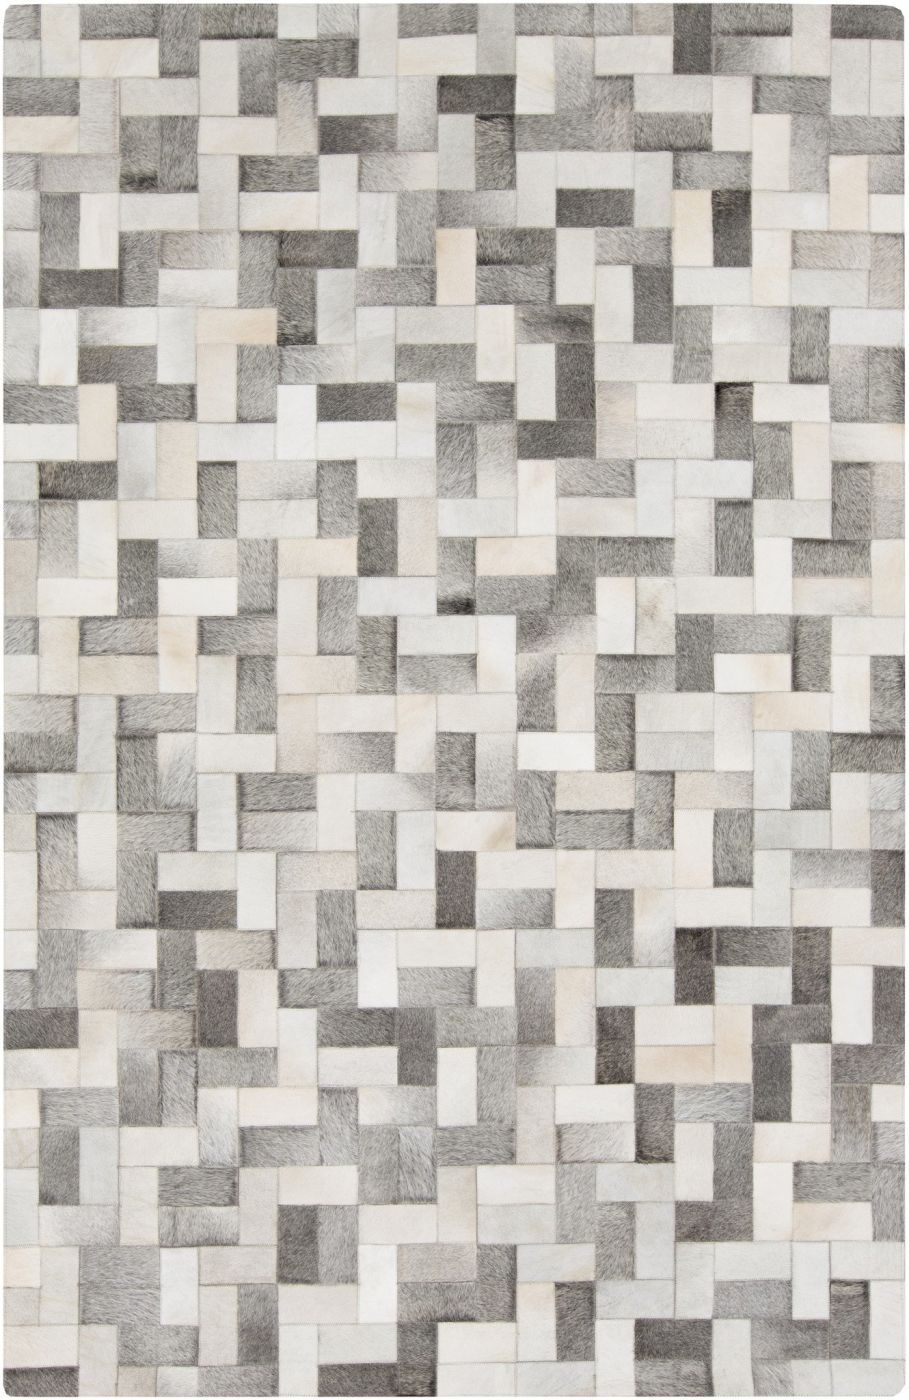 Surya blowout sale up to 70 off out1012 23 outback hides and leather area rug gray neutral - Alfombras contemporaneas ...